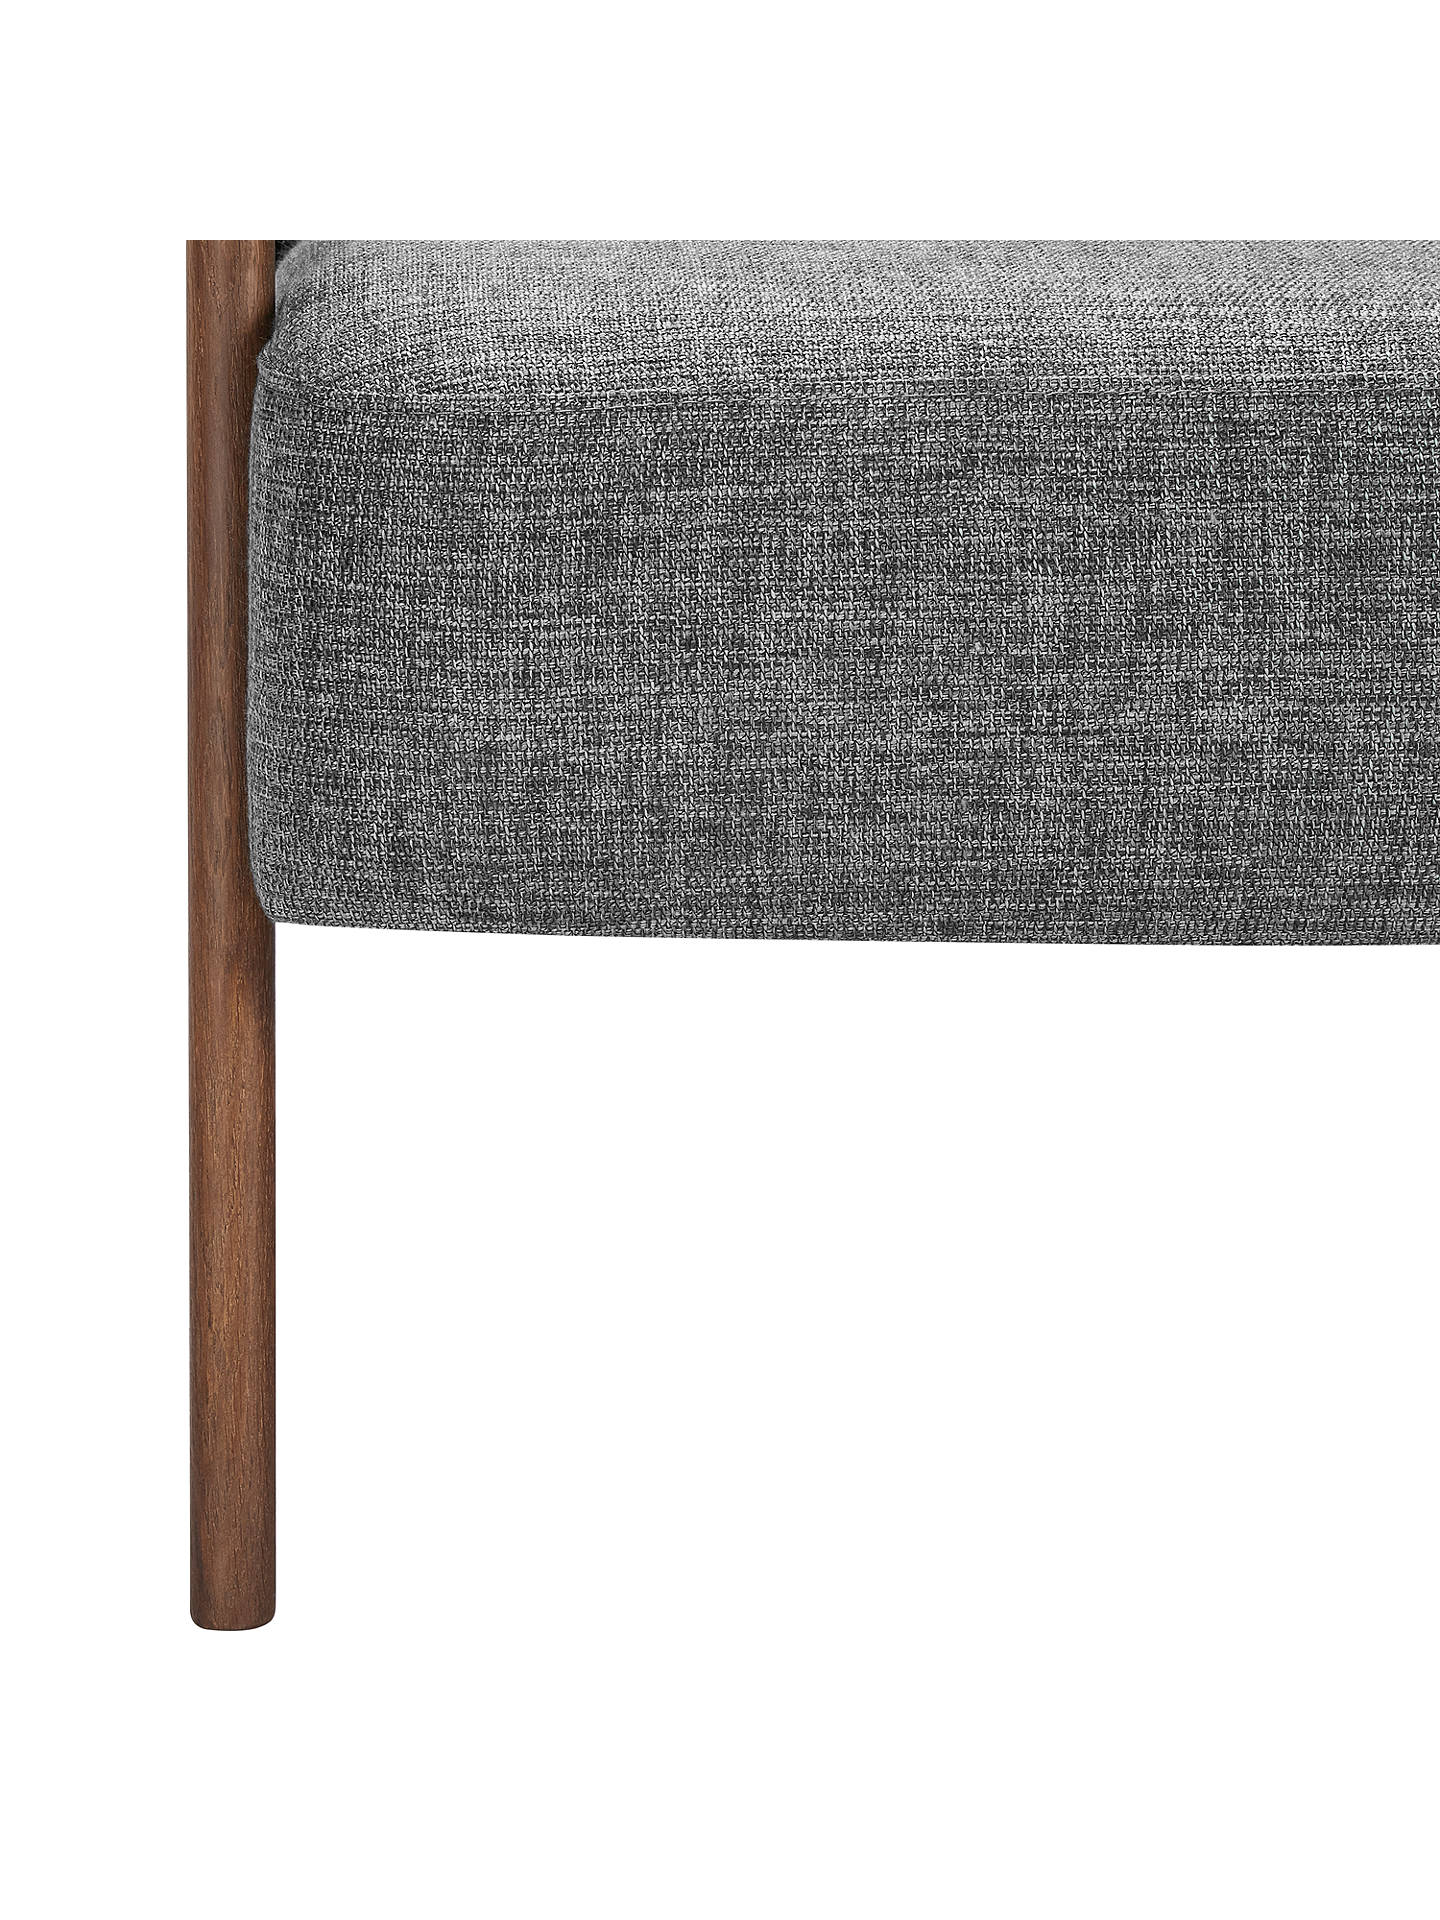 BuyJohn Lewis & Partners Hendricks Accent Chair Online at johnlewis.com